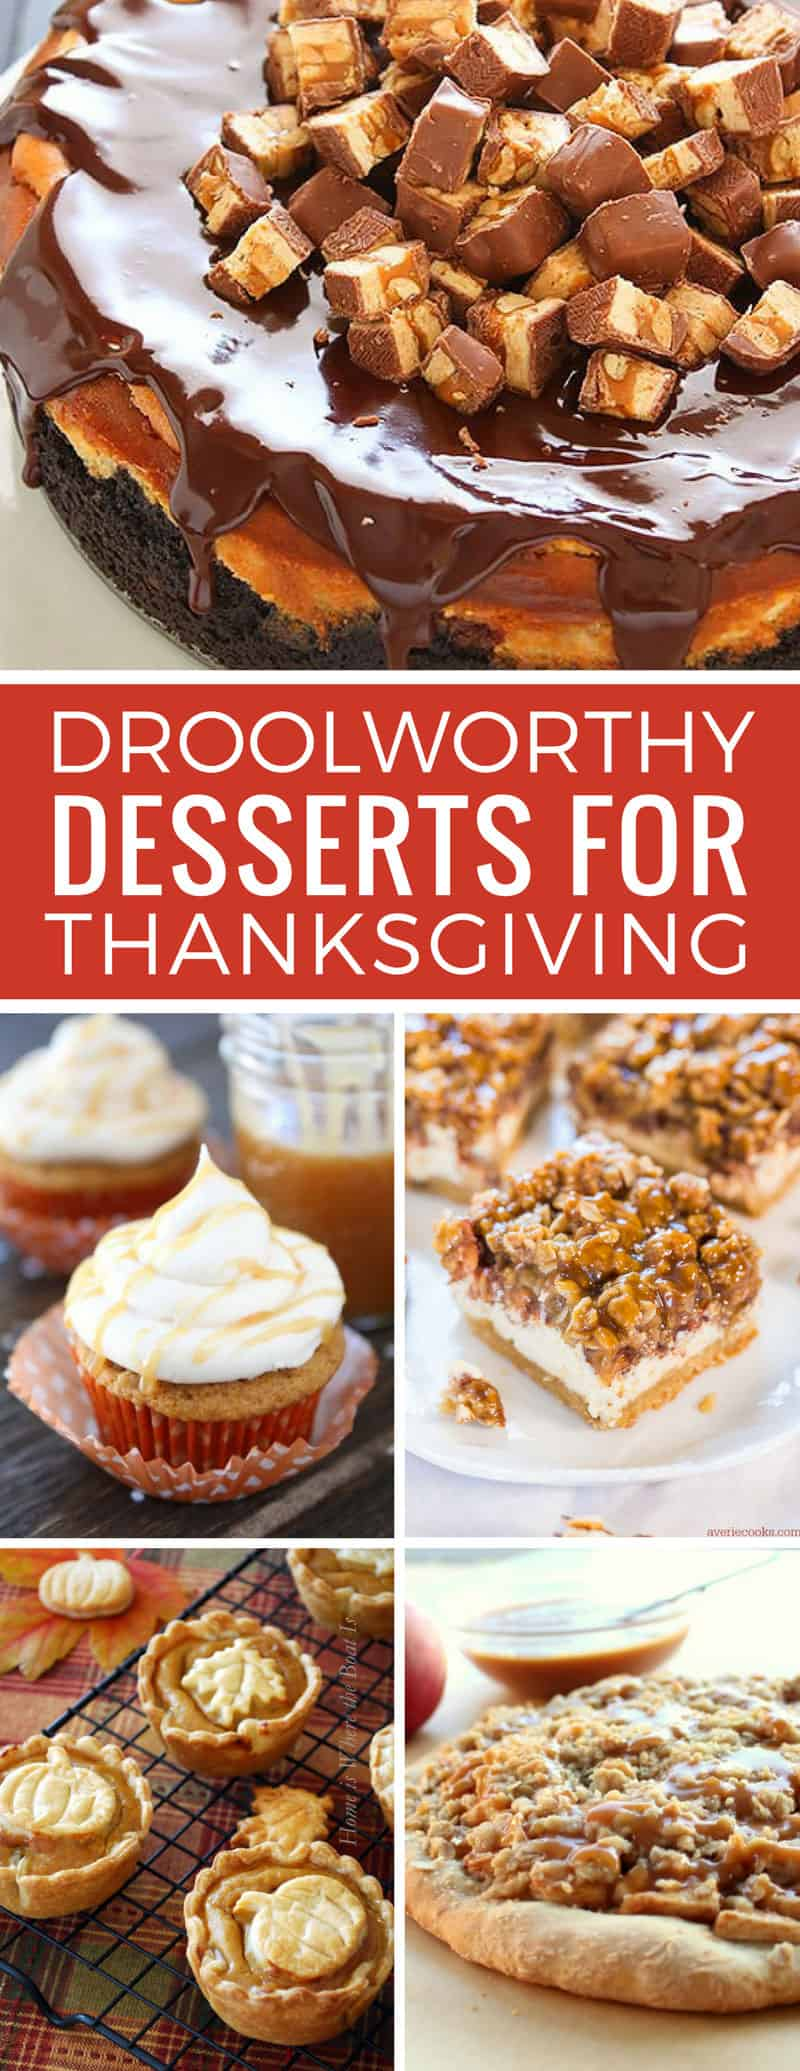 Oh my goodness - maybe I'll start the diet after Thanksgiving - these easy dessert recipes look amazing! Thanks for sharing!